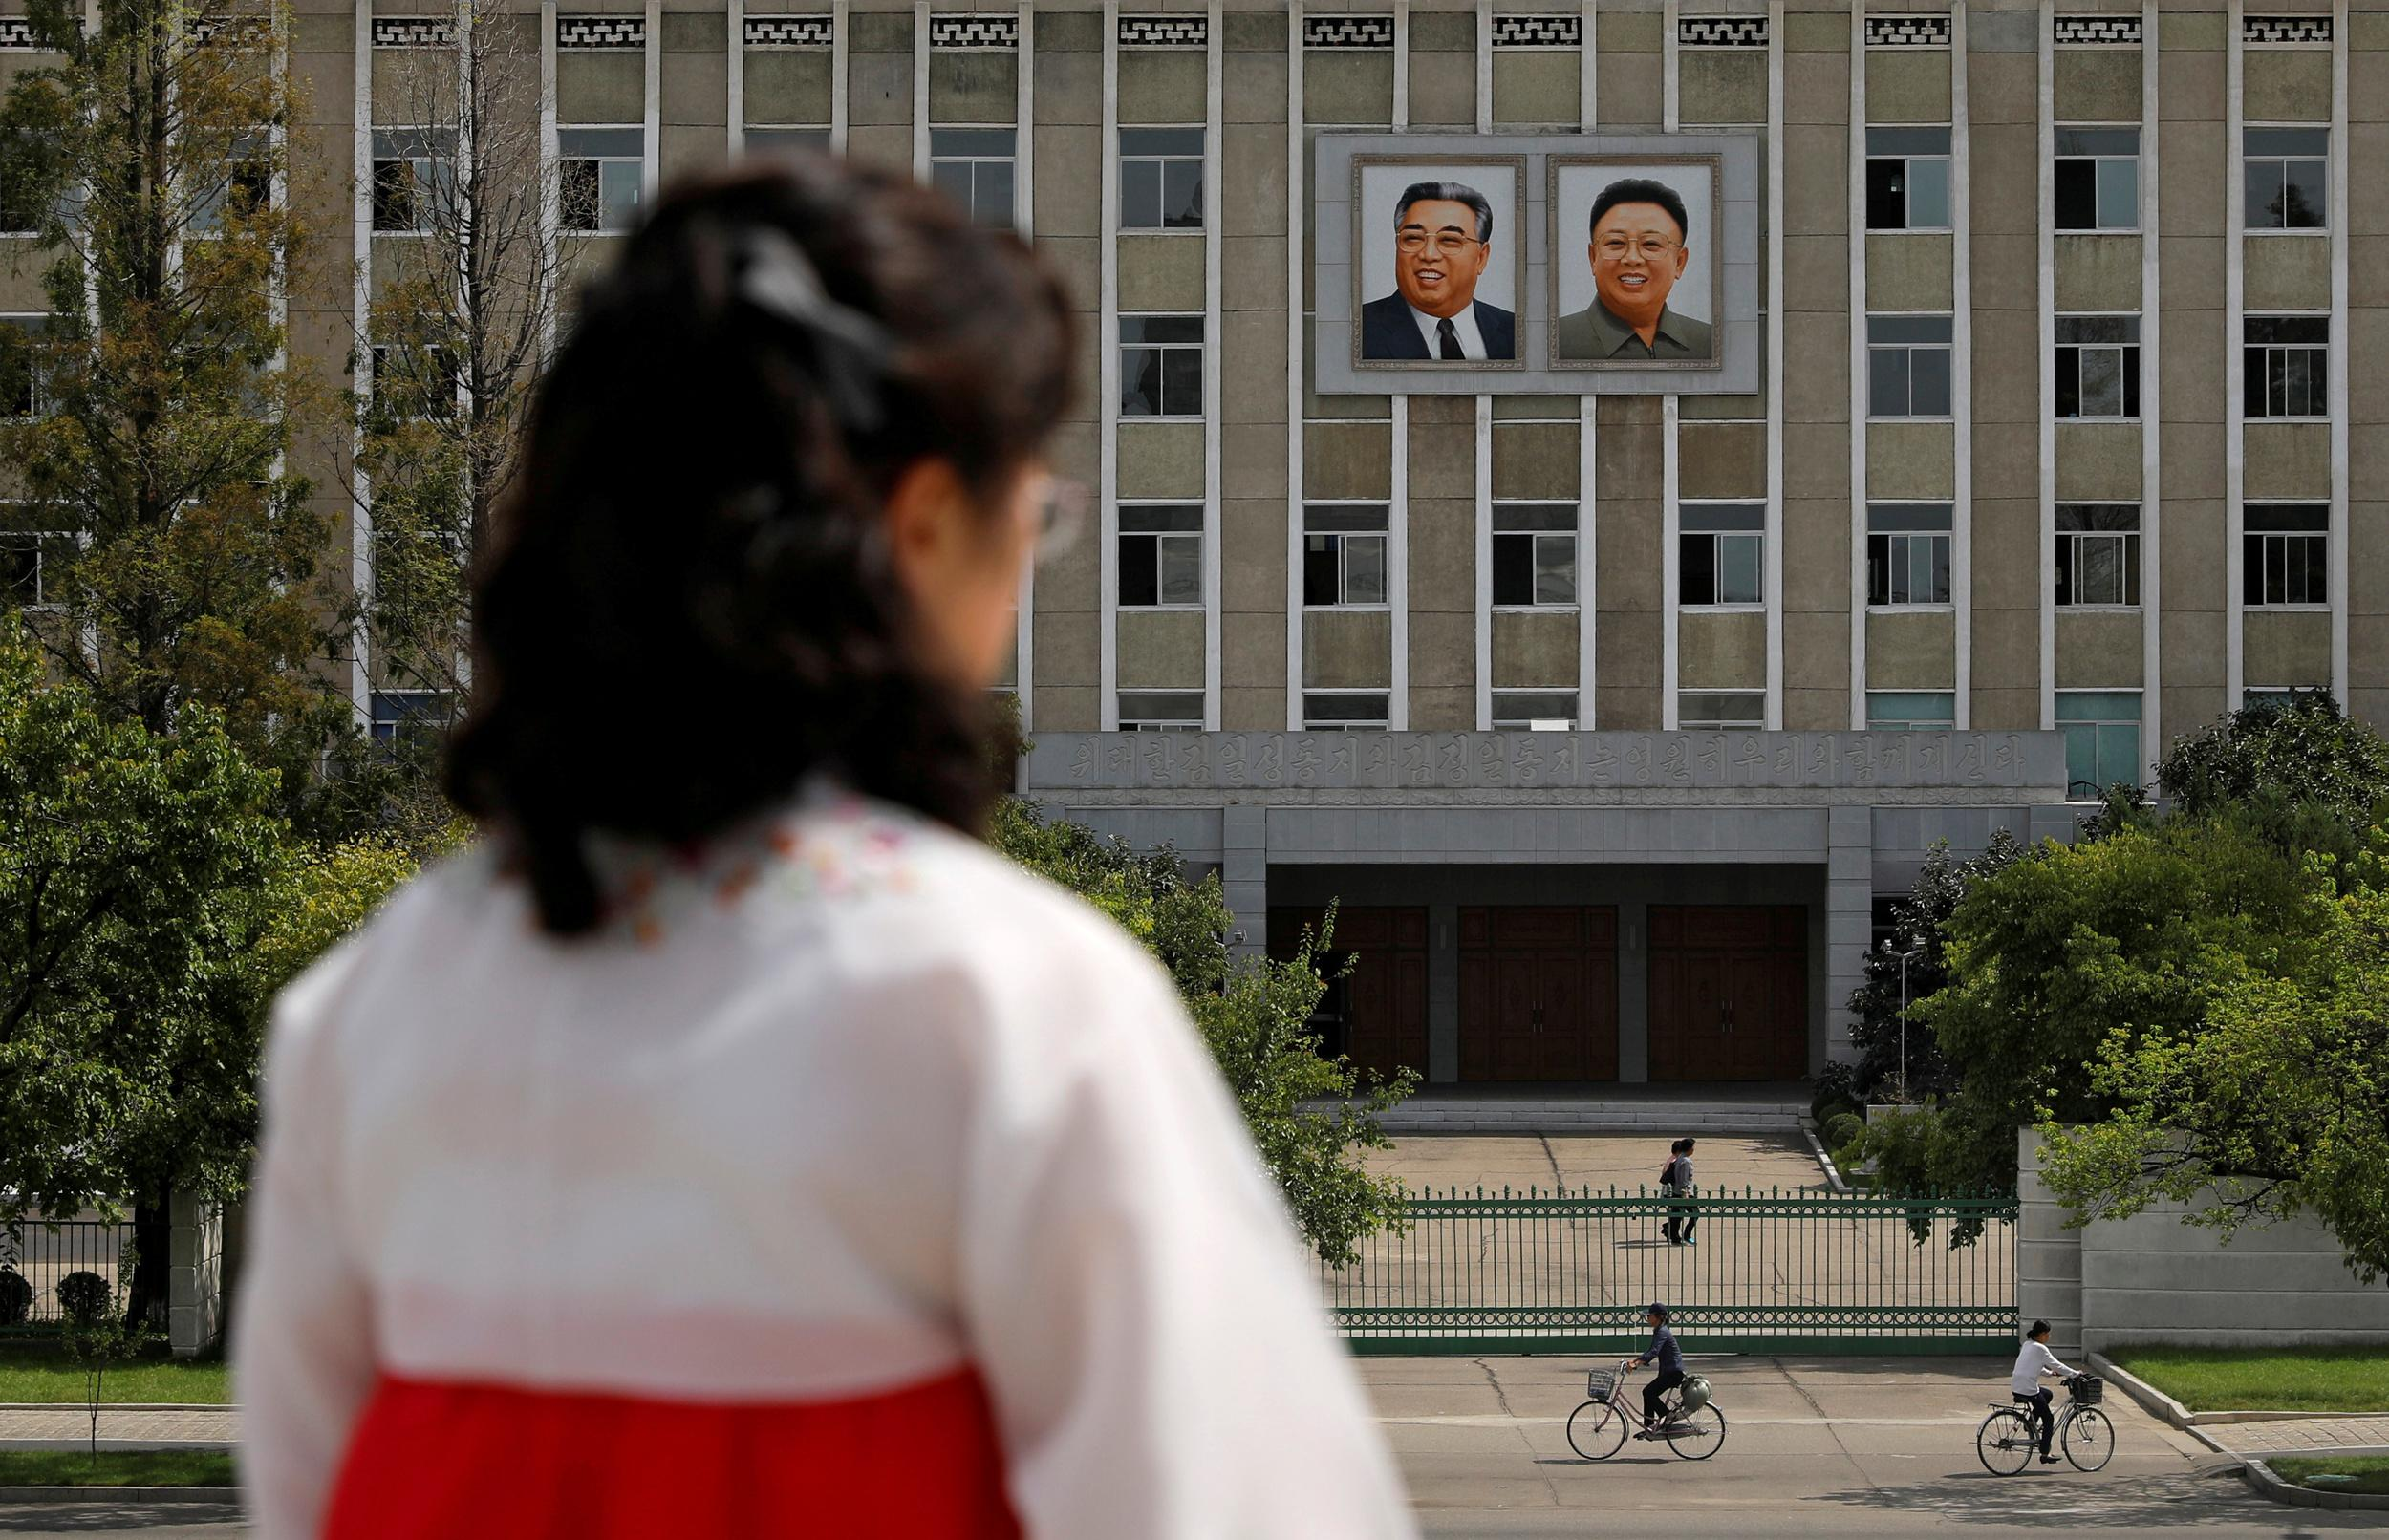 """Portraits of late North Korean leaders Kim Il Sung and Kim Jong Il are seen on the facade of a government building in Pyongyang, North Korea, September 11, 2018. REUTERS/Danish Siddiqui   SEARCH """"POY GLOBAL"""" FOR FOR THIS STORY. SEARCH """"REUTERS POY"""" FOR ALL BEST OF 2018 PACKAGES. TPX IMAGES OF THE DAY."""